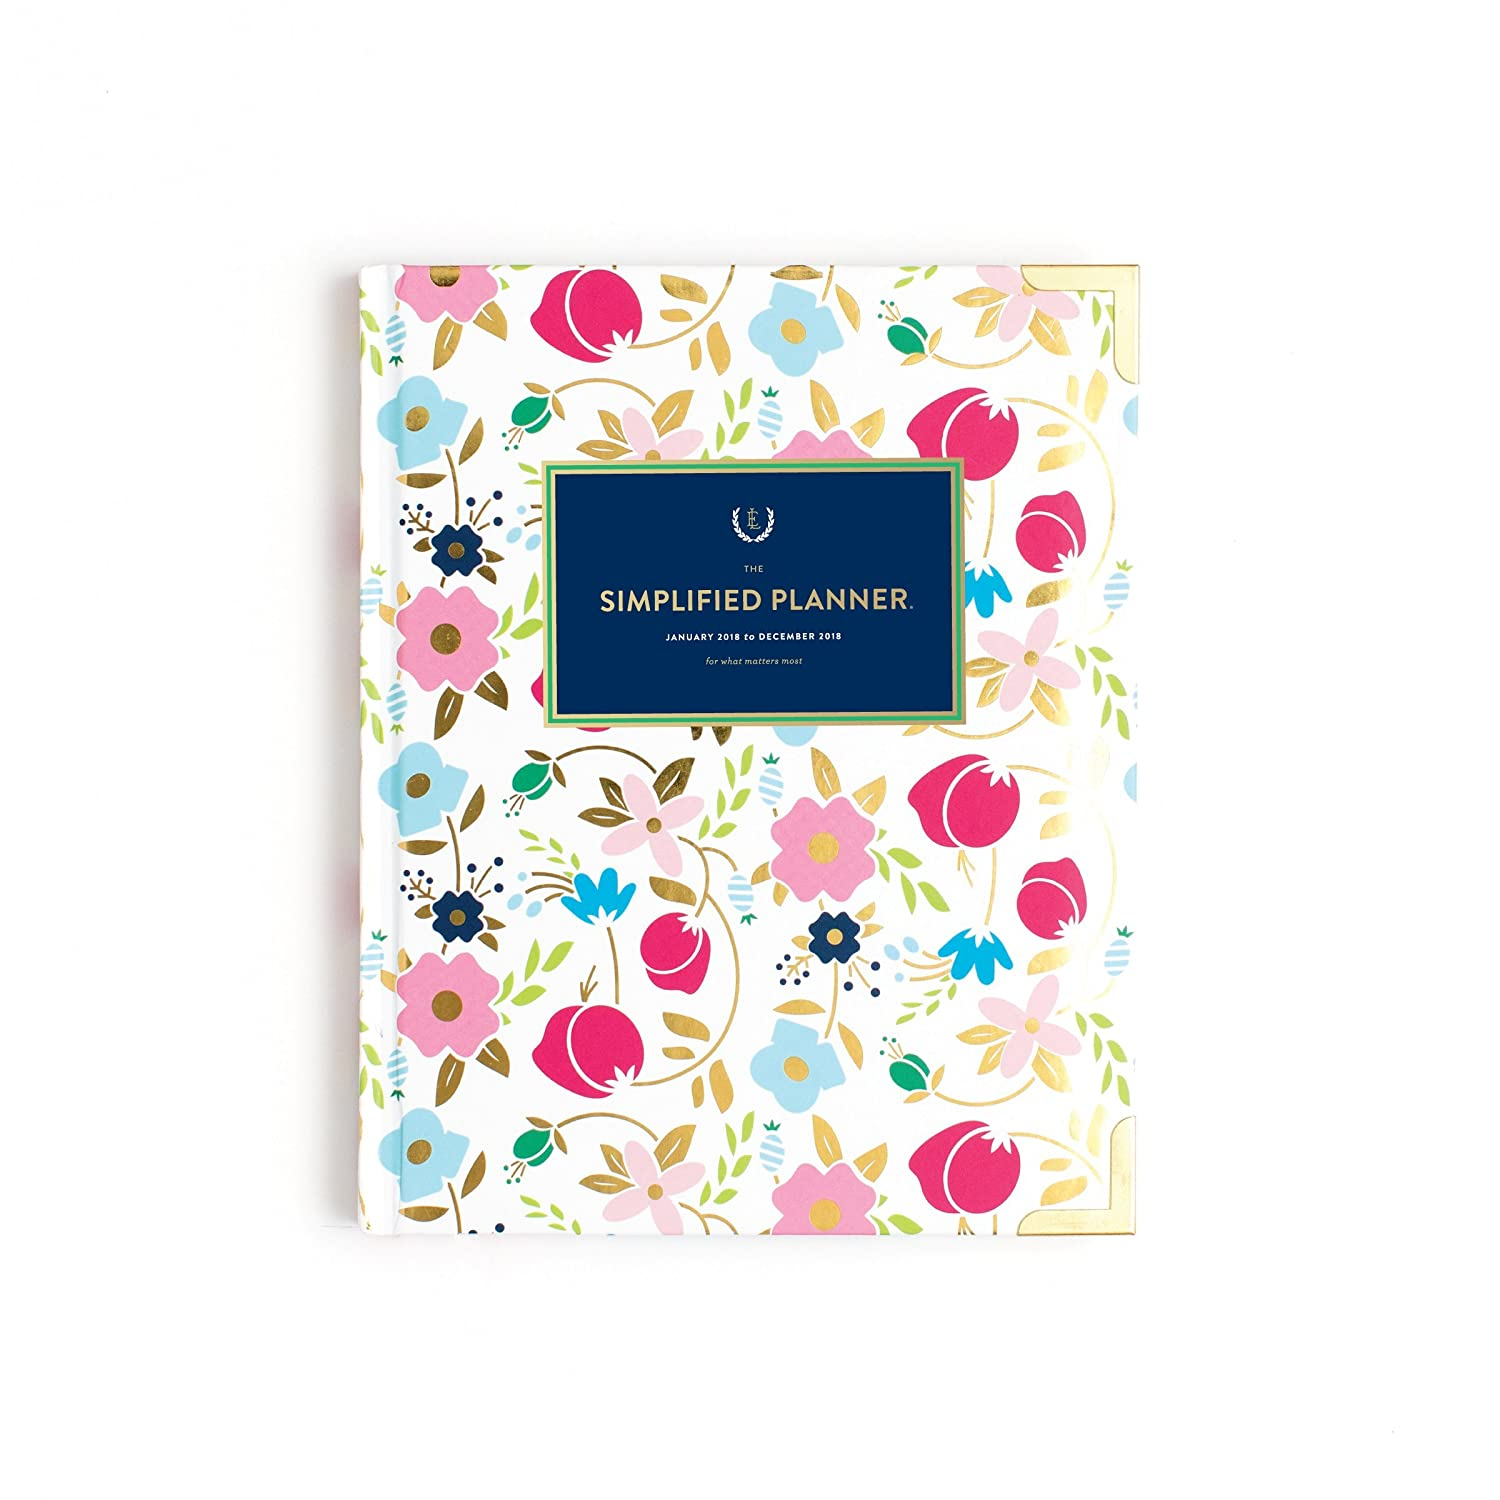 picture about Simplified Planner titled : Emily Ley Paper 2018 Calendar Weekly Simplified